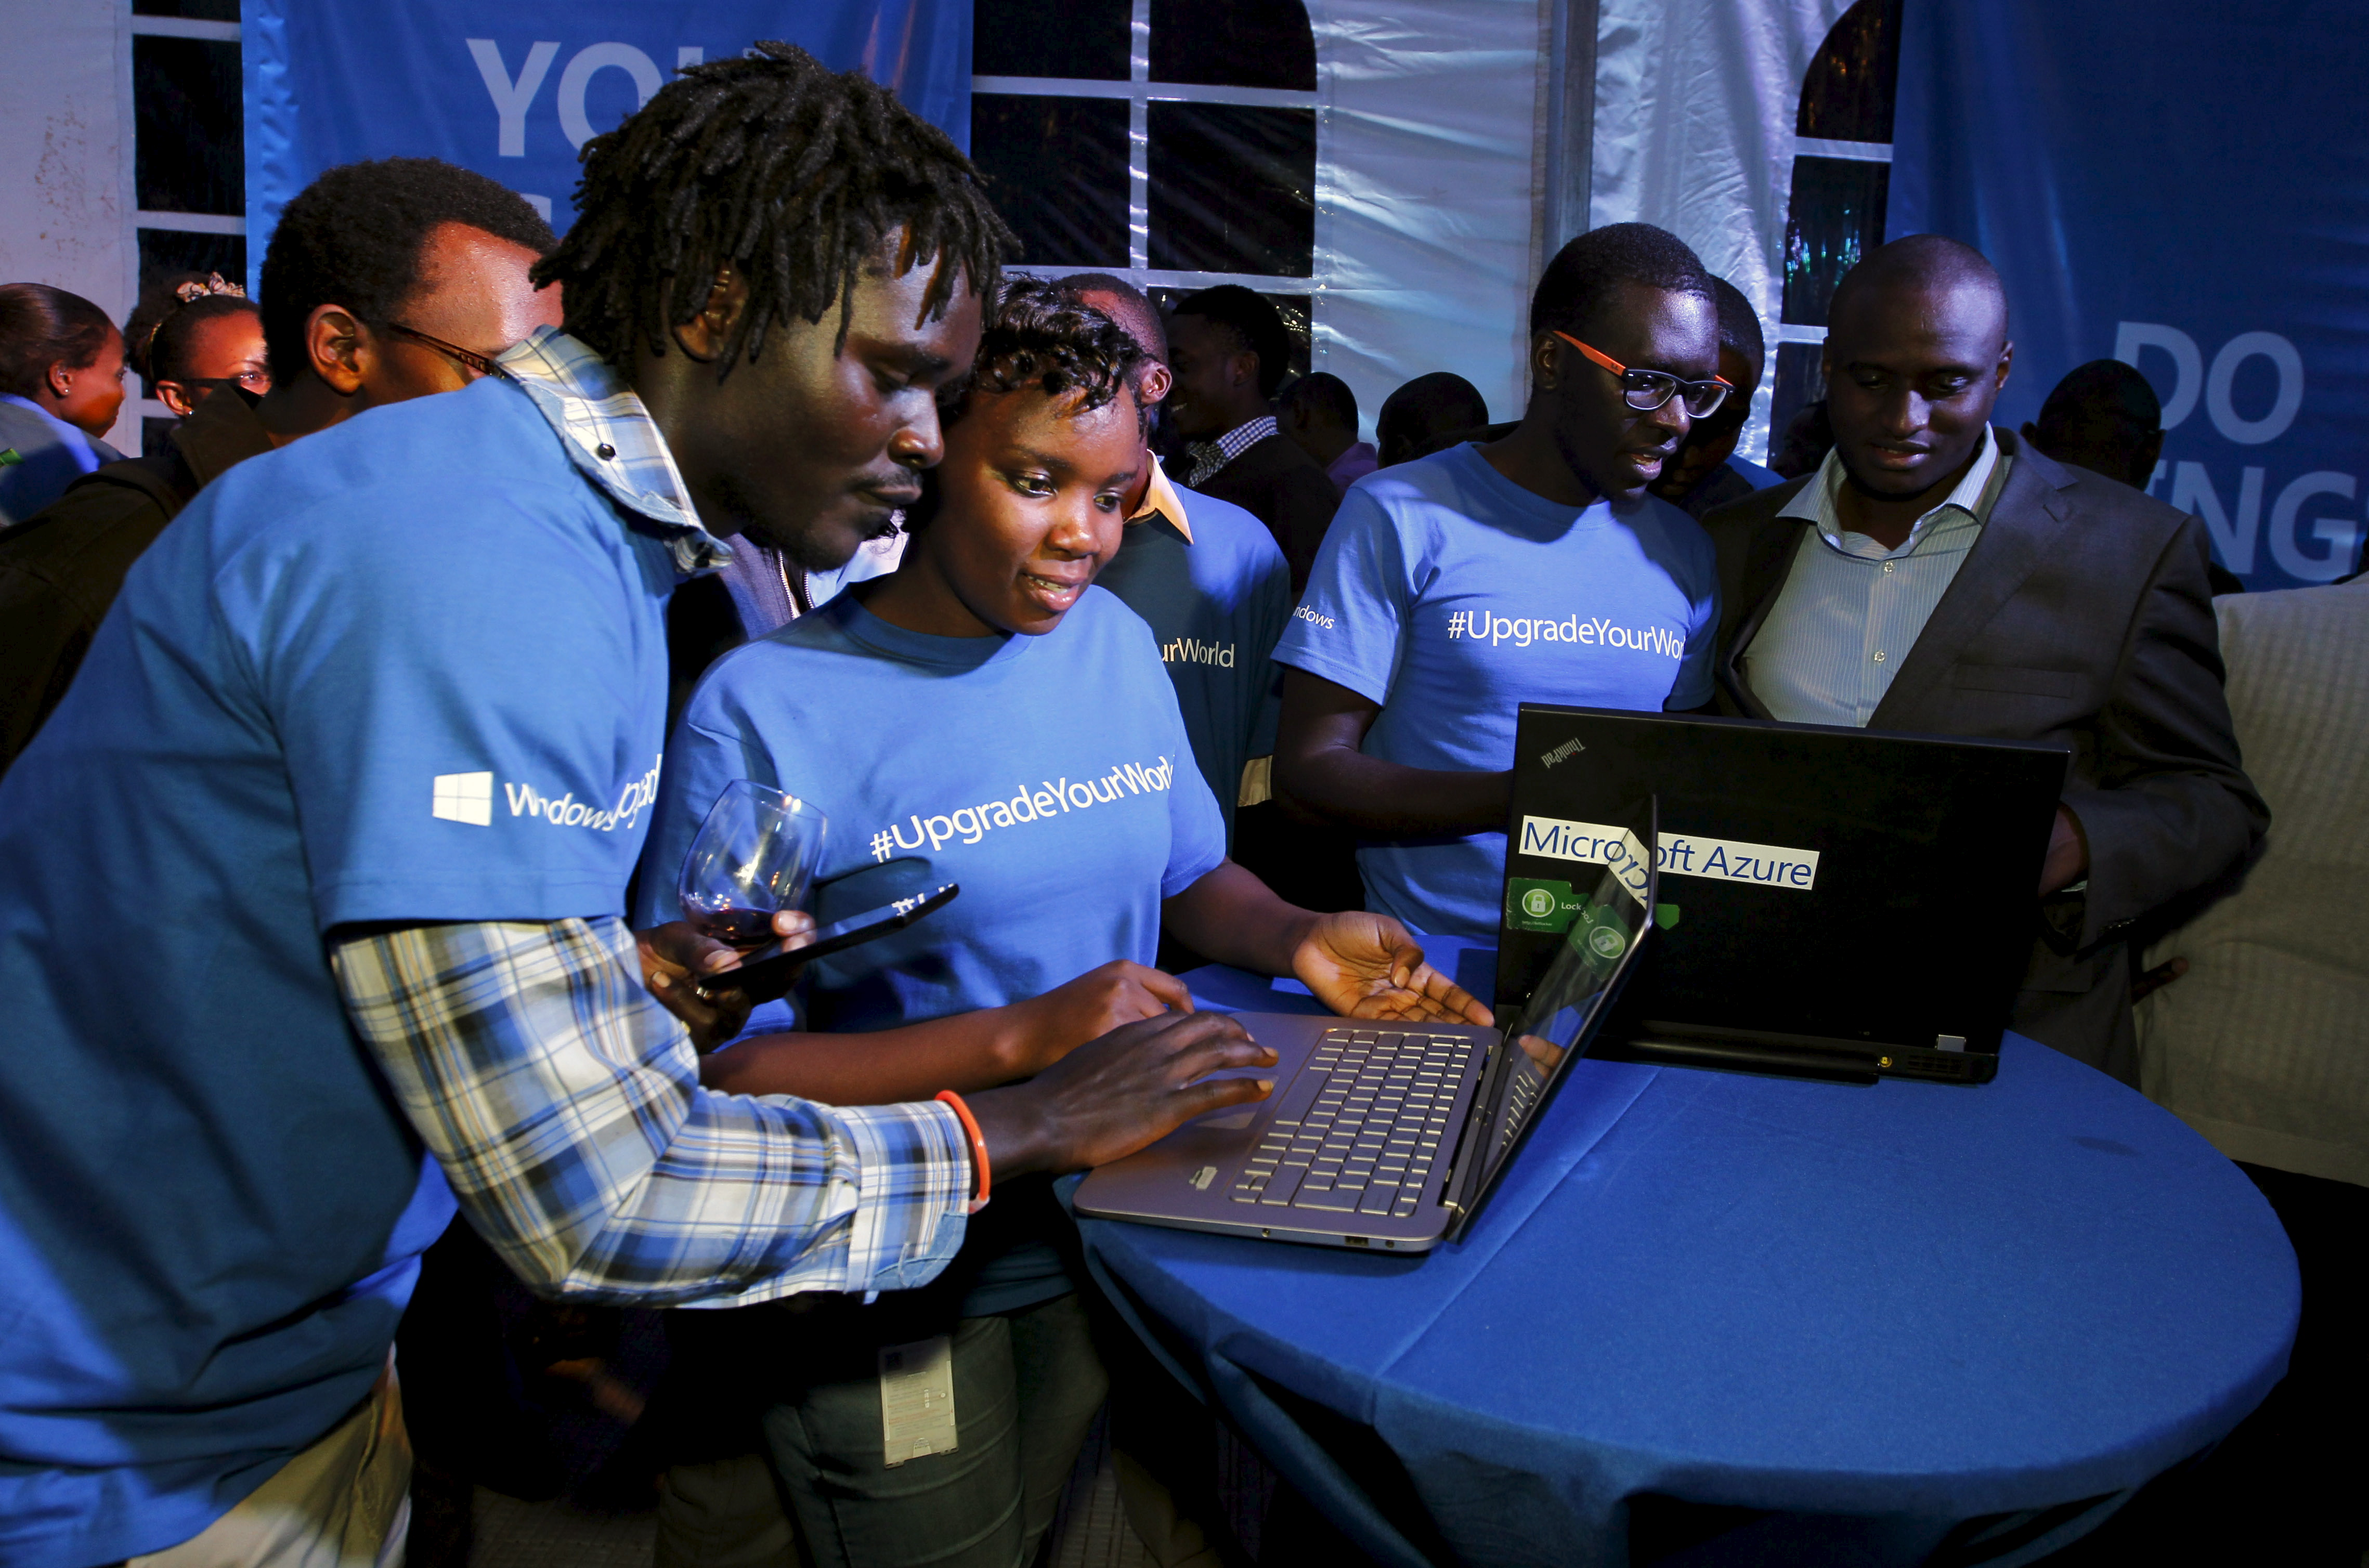 Microsoft delegates check applications in a computer during the launch of the Windows 10 operating system in Kenya's capital Nairobi